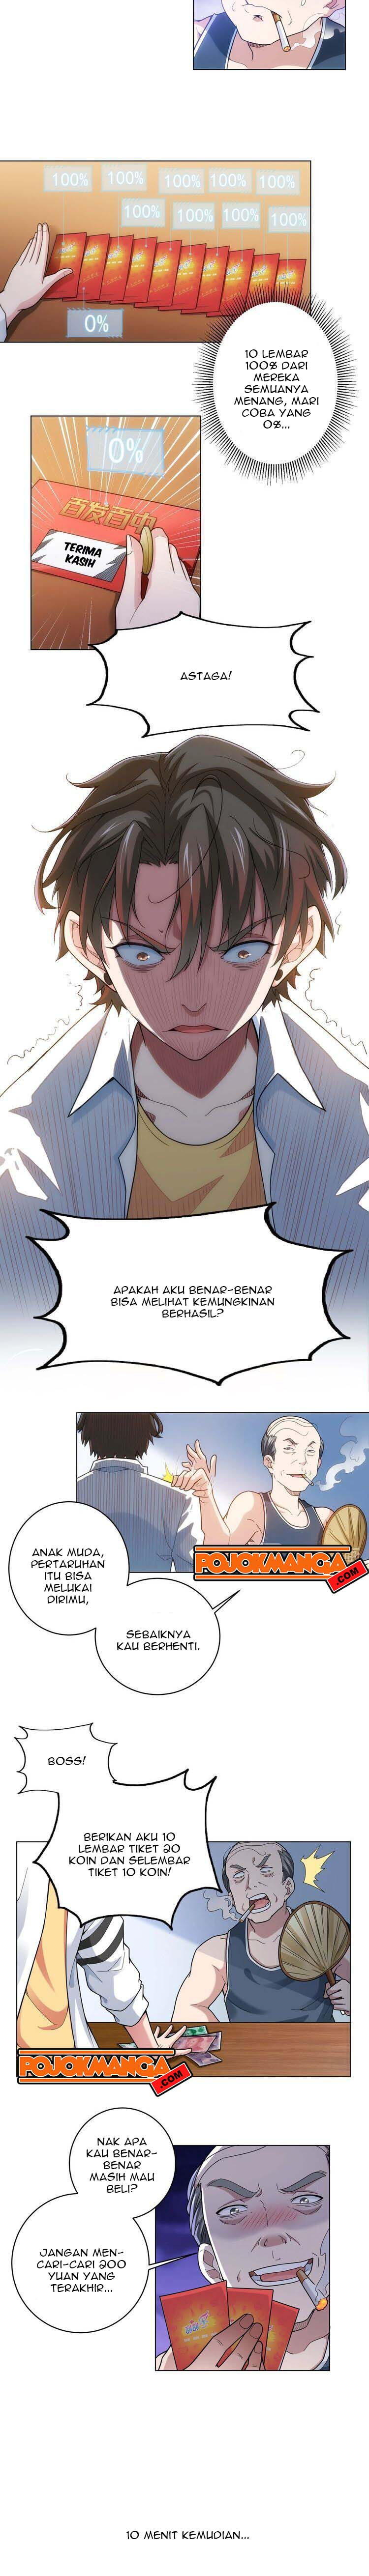 Spoiler Manhua I Can See The Success Rate 1